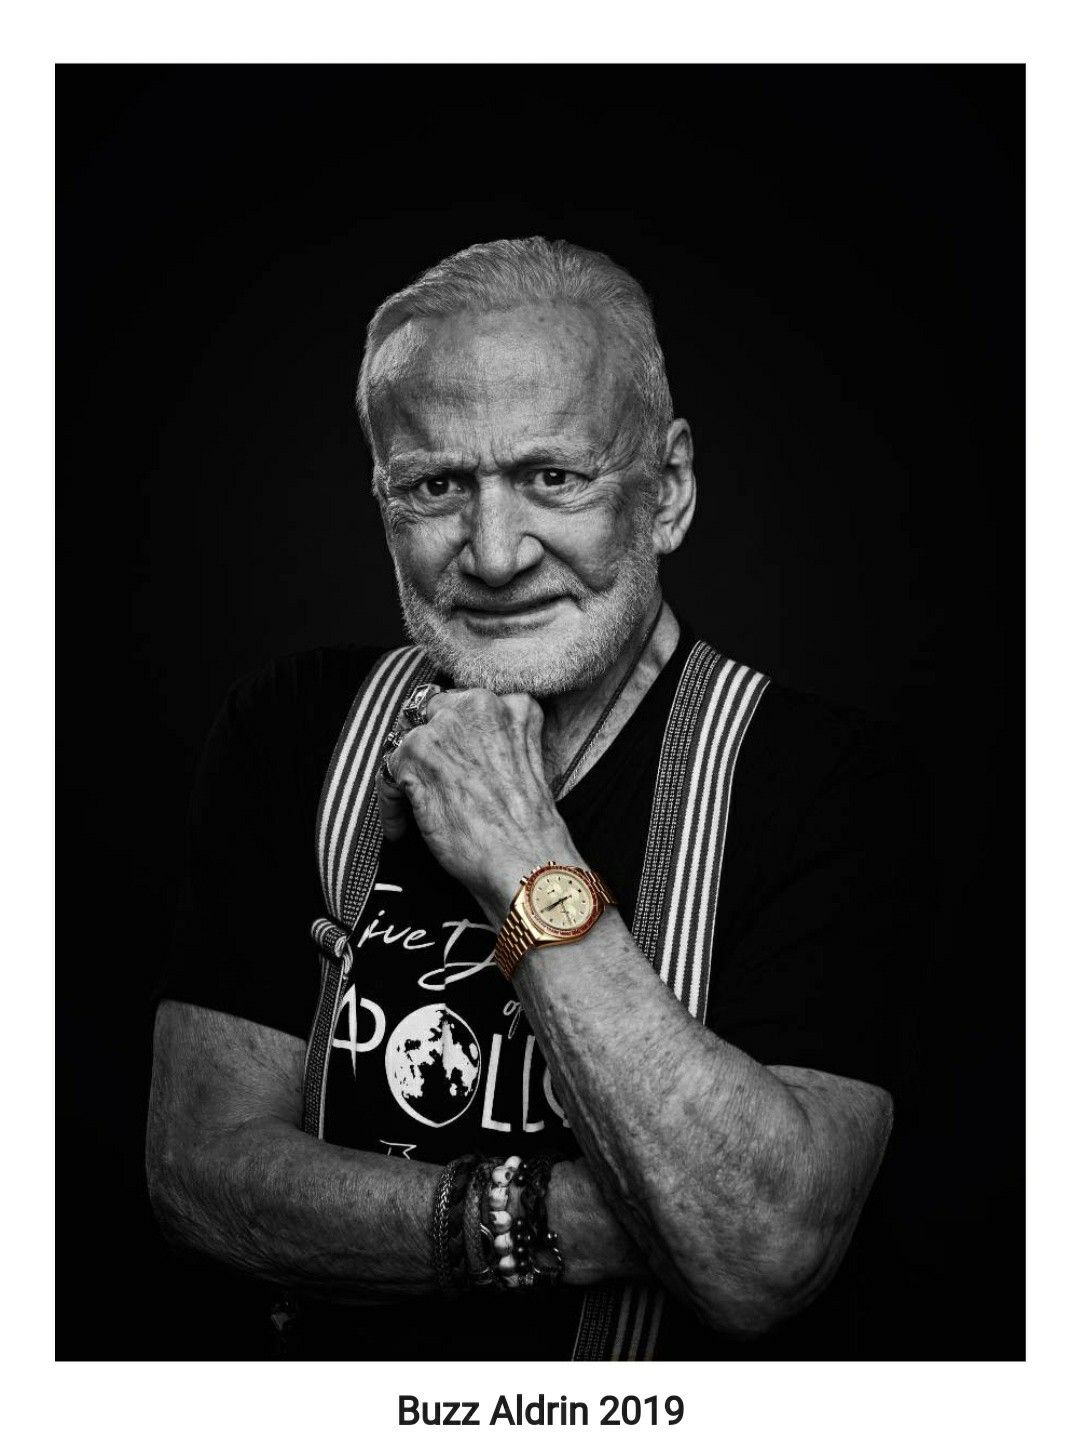 Buzz Aldrin Omega Speedmaster Addiction Buzz Aldrin Moon